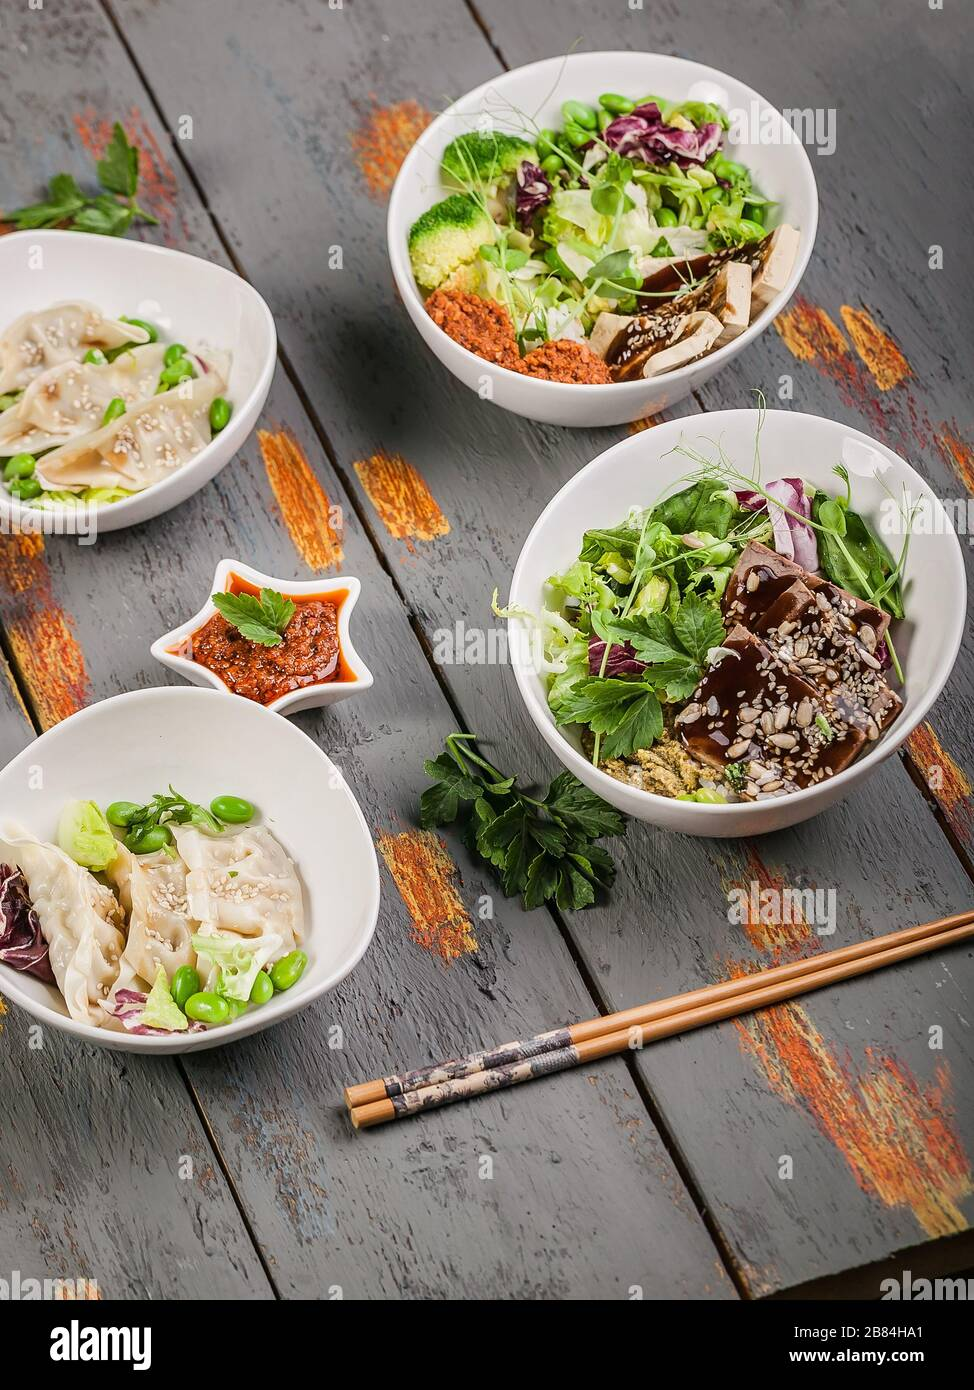 Vertical shot traditional gyozu dumplings, boiled vegetables with rice, pork and spicy sauce. Oriental cuisine Stock Photo